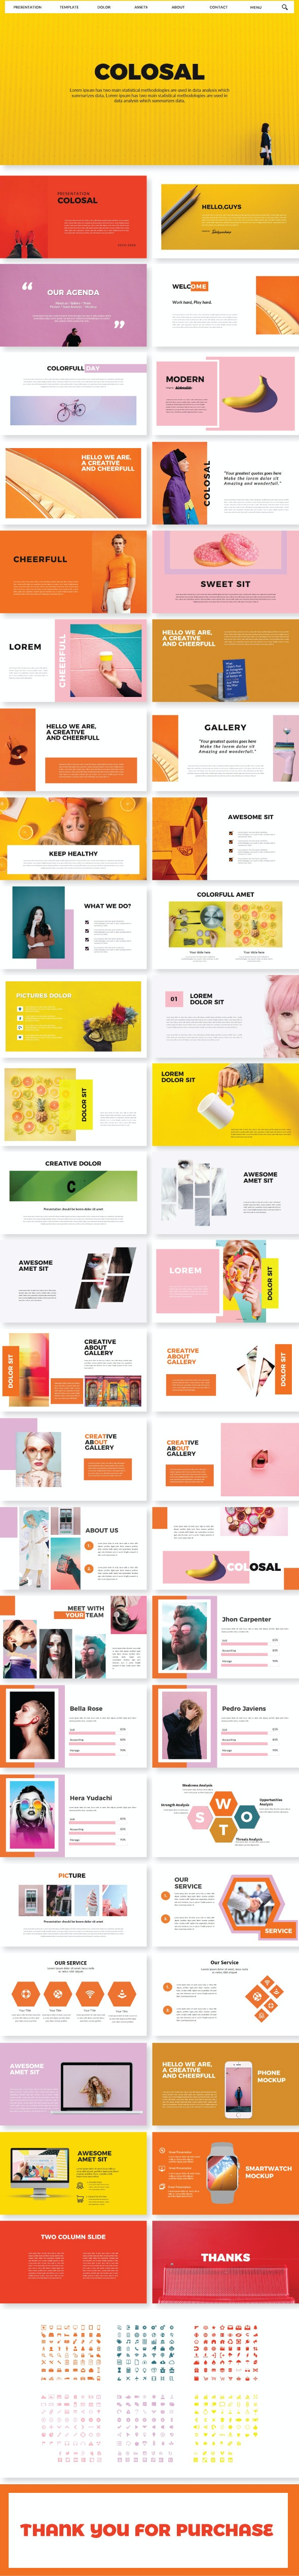 Colosal Keynote Template - Creative Keynote Templates